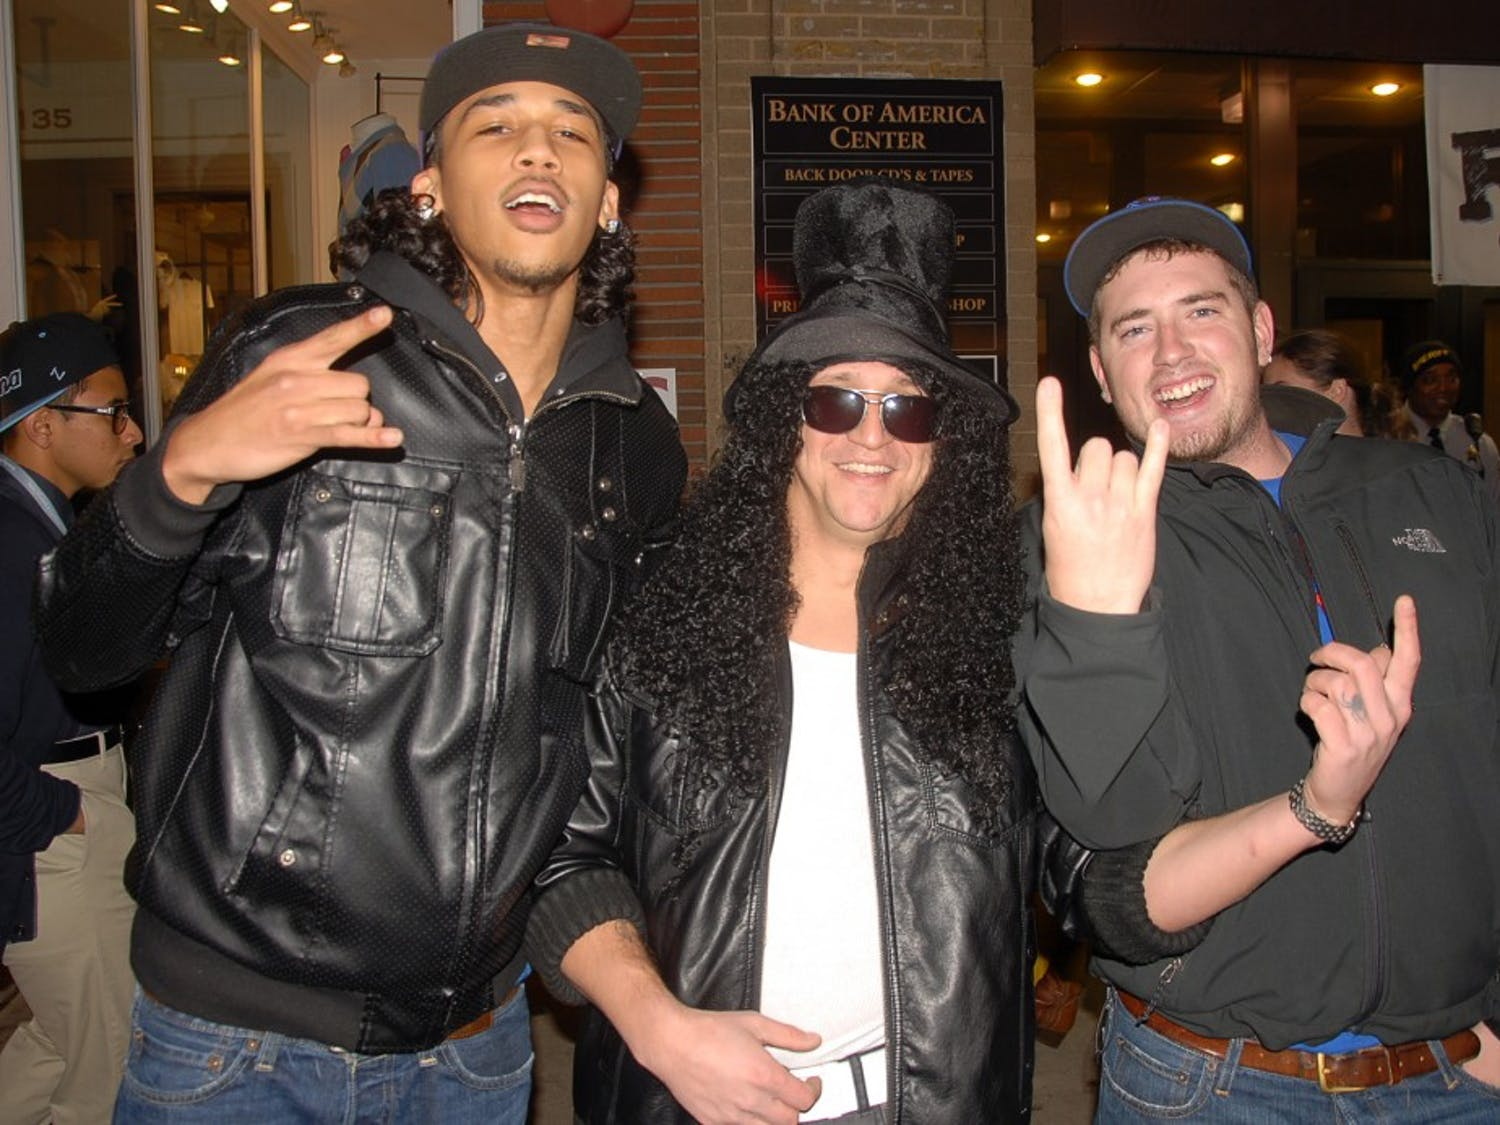 """Brian Gourly, center, of Oxford, N.C., poses as Guns 'n Roses guitarist Slash. """"There has been a lot of horns and whistling and a lot of yelling,"""" Gourly said."""